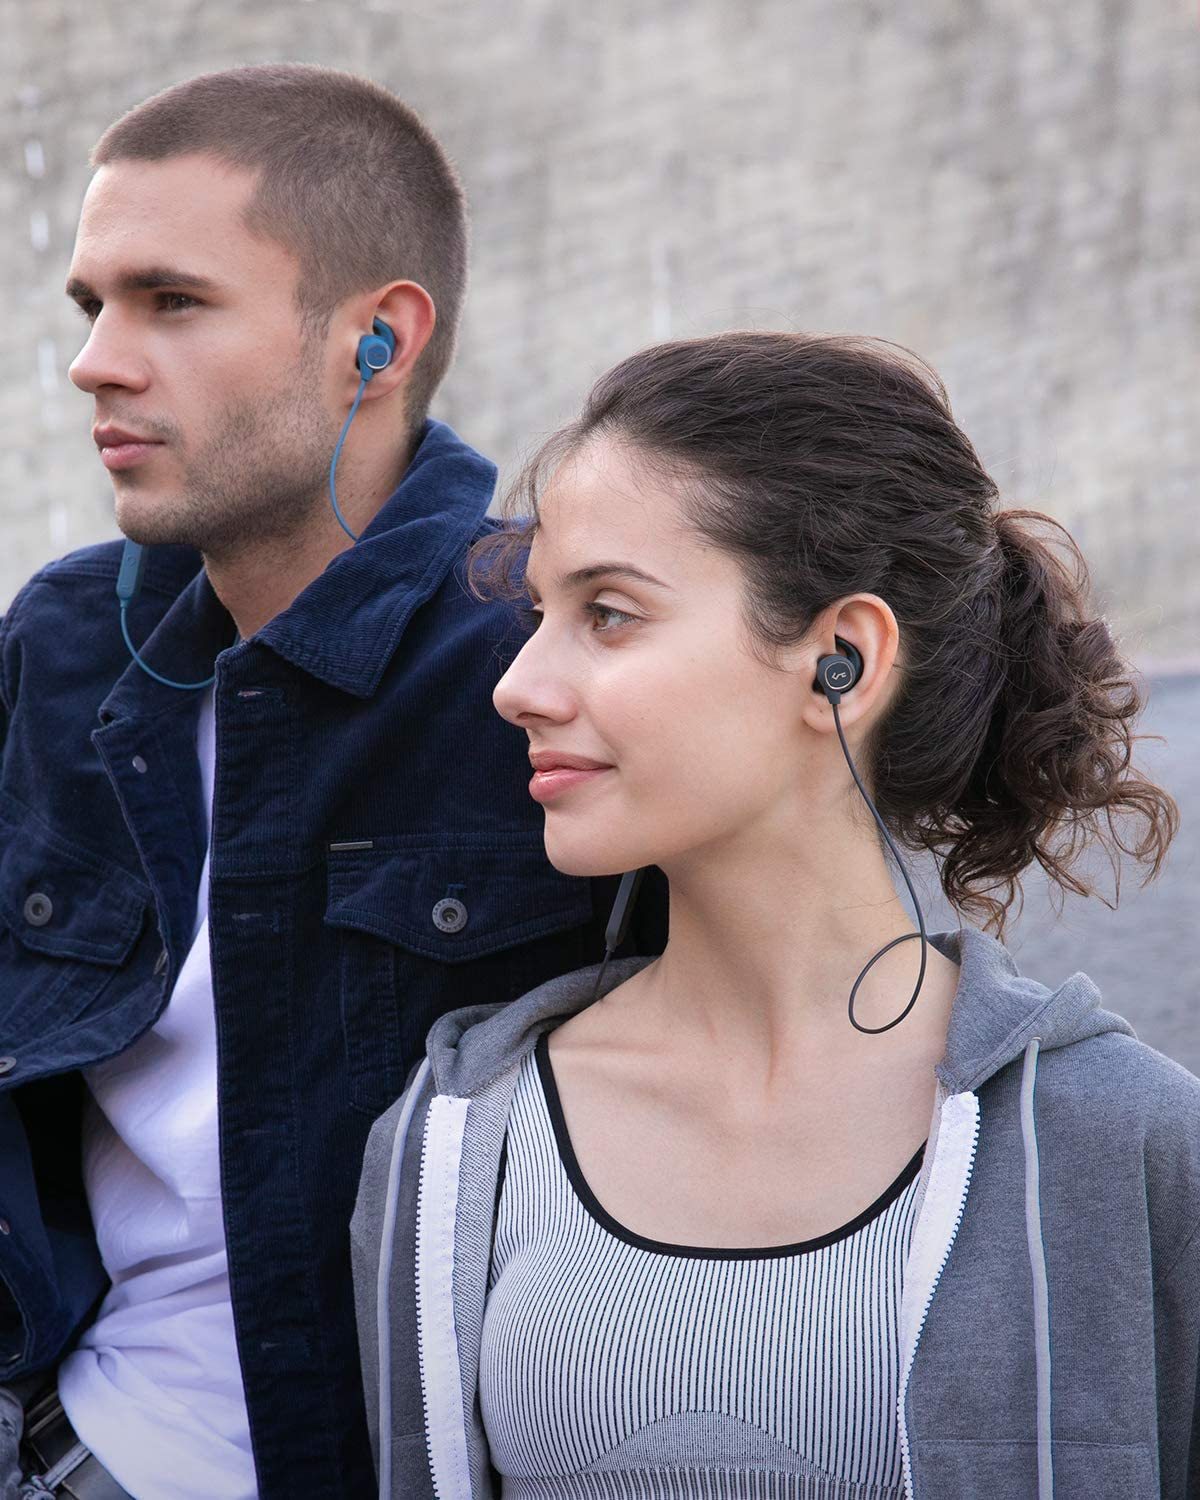 Best Aukey Latitude Earbuds Under 50